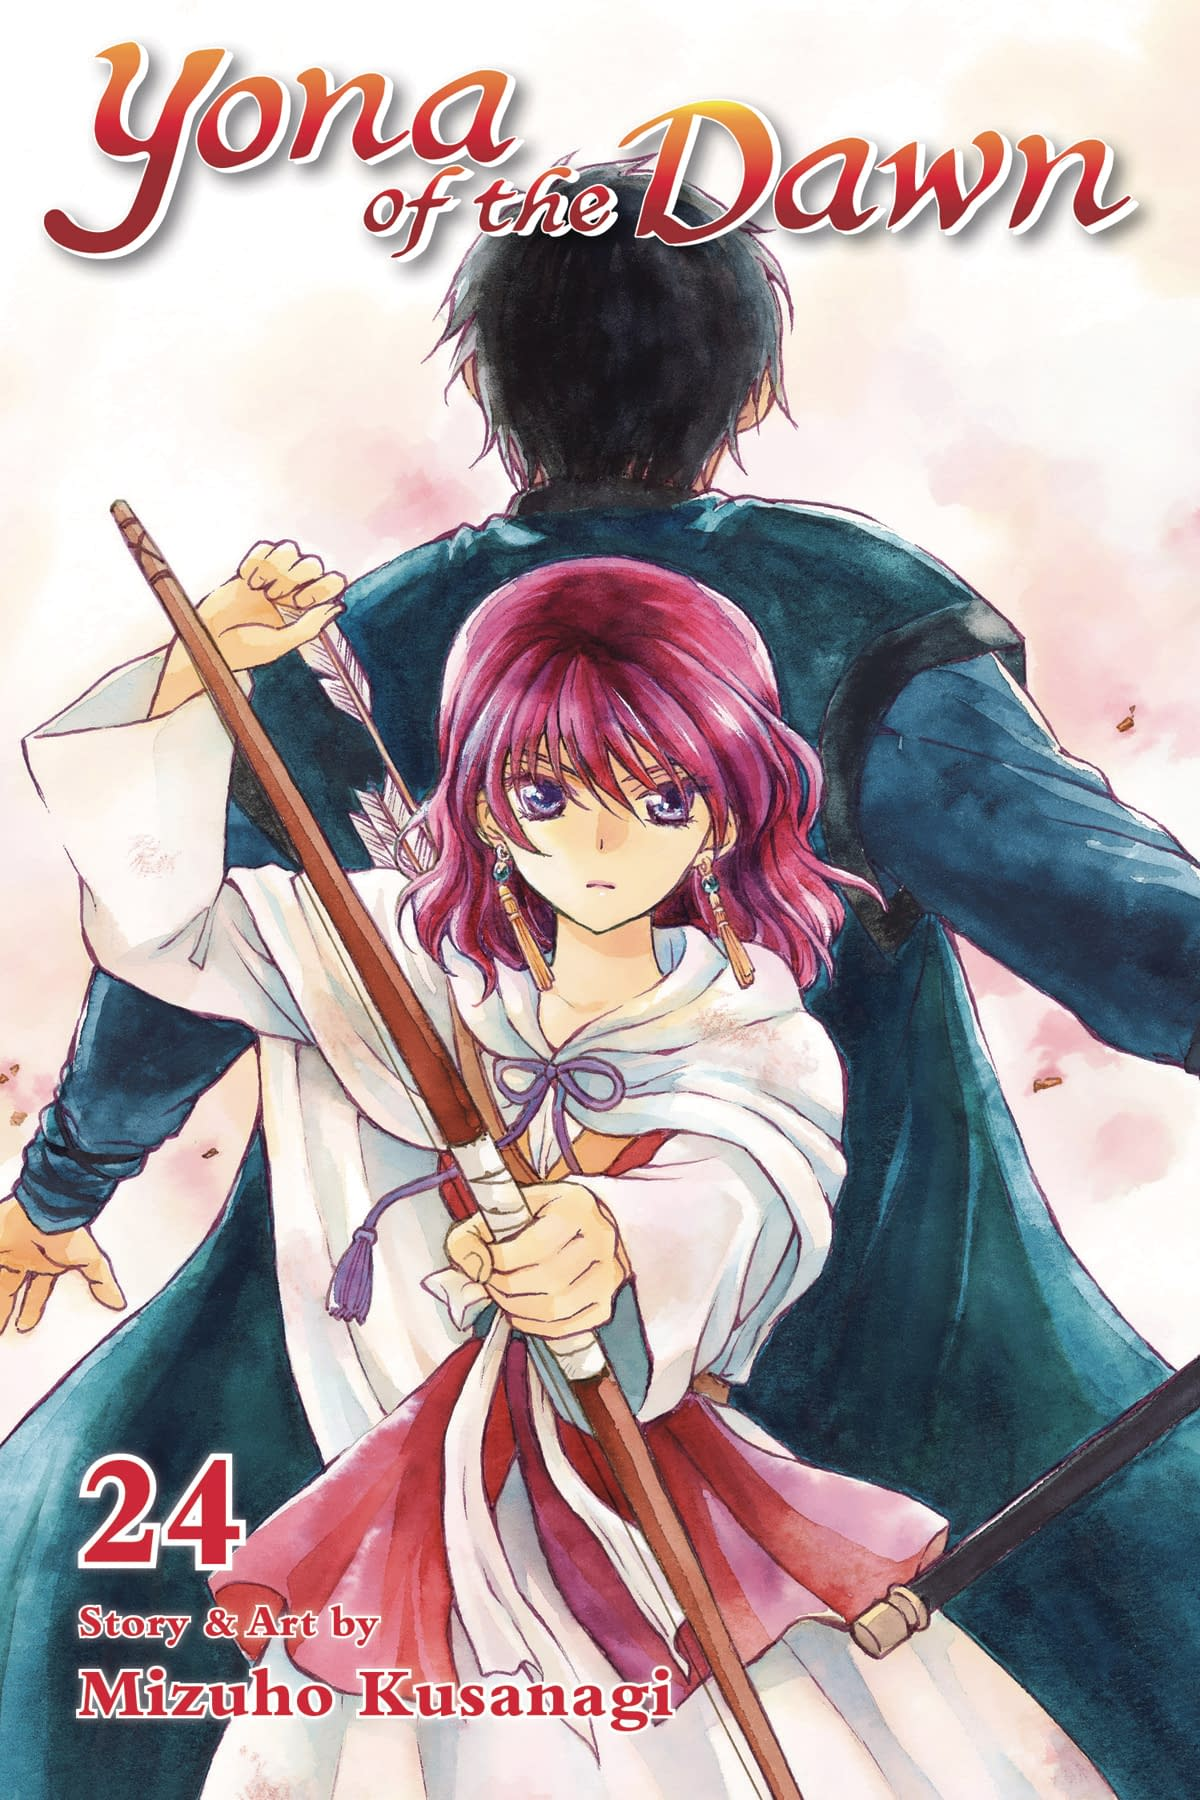 YONA OF THE DAWN GN VOL 24